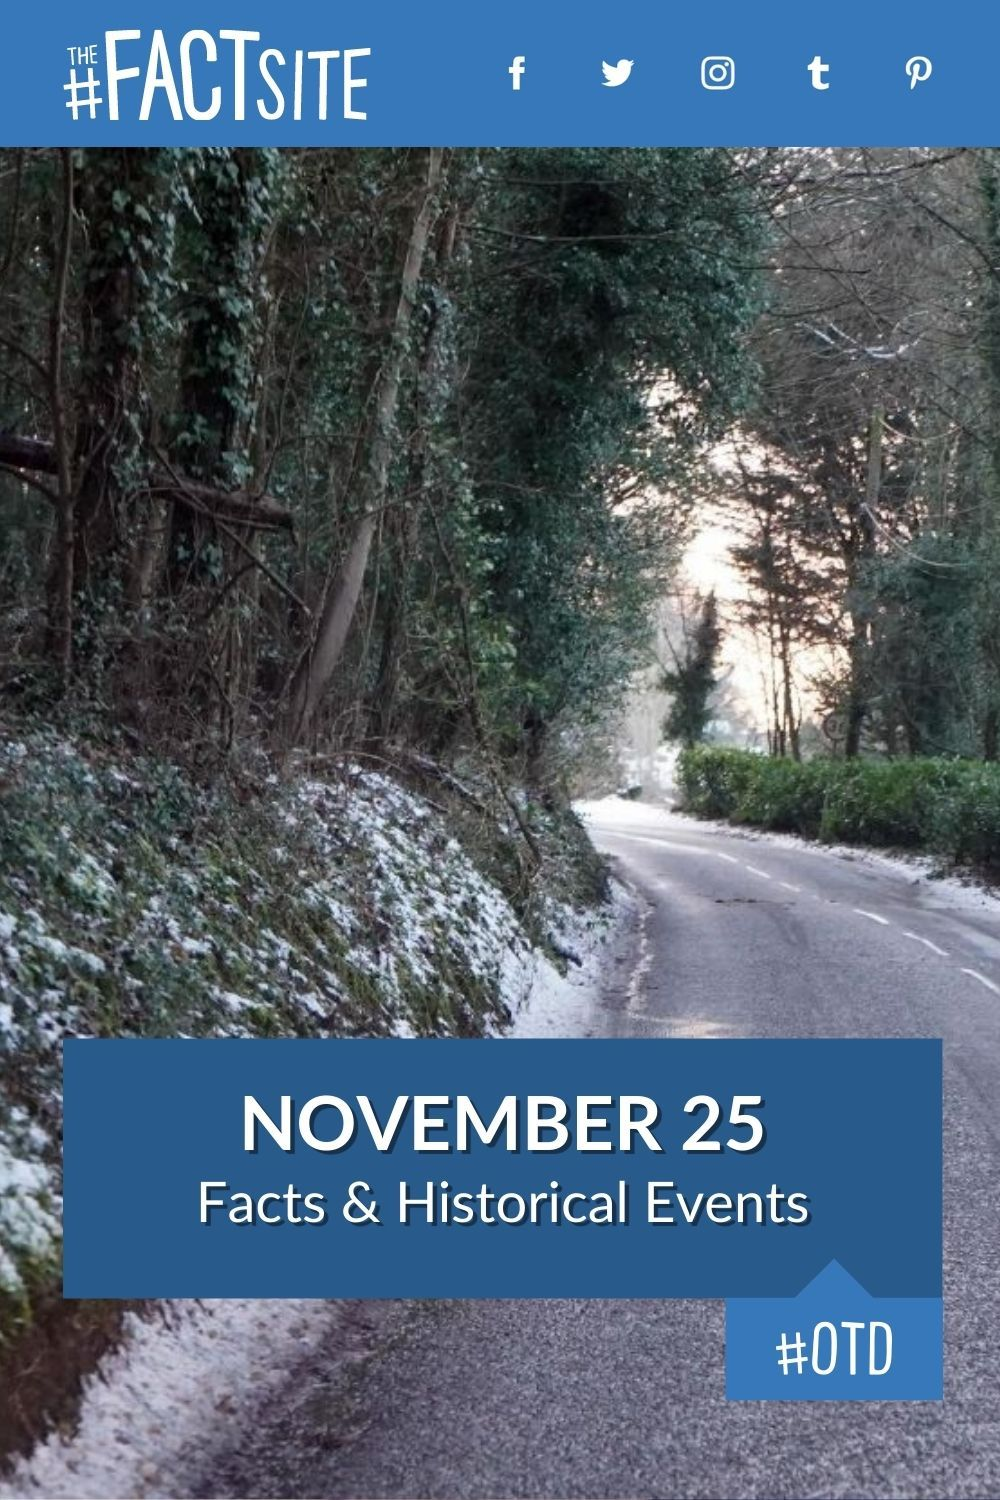 Facts & Historic Events That Happened on November 25